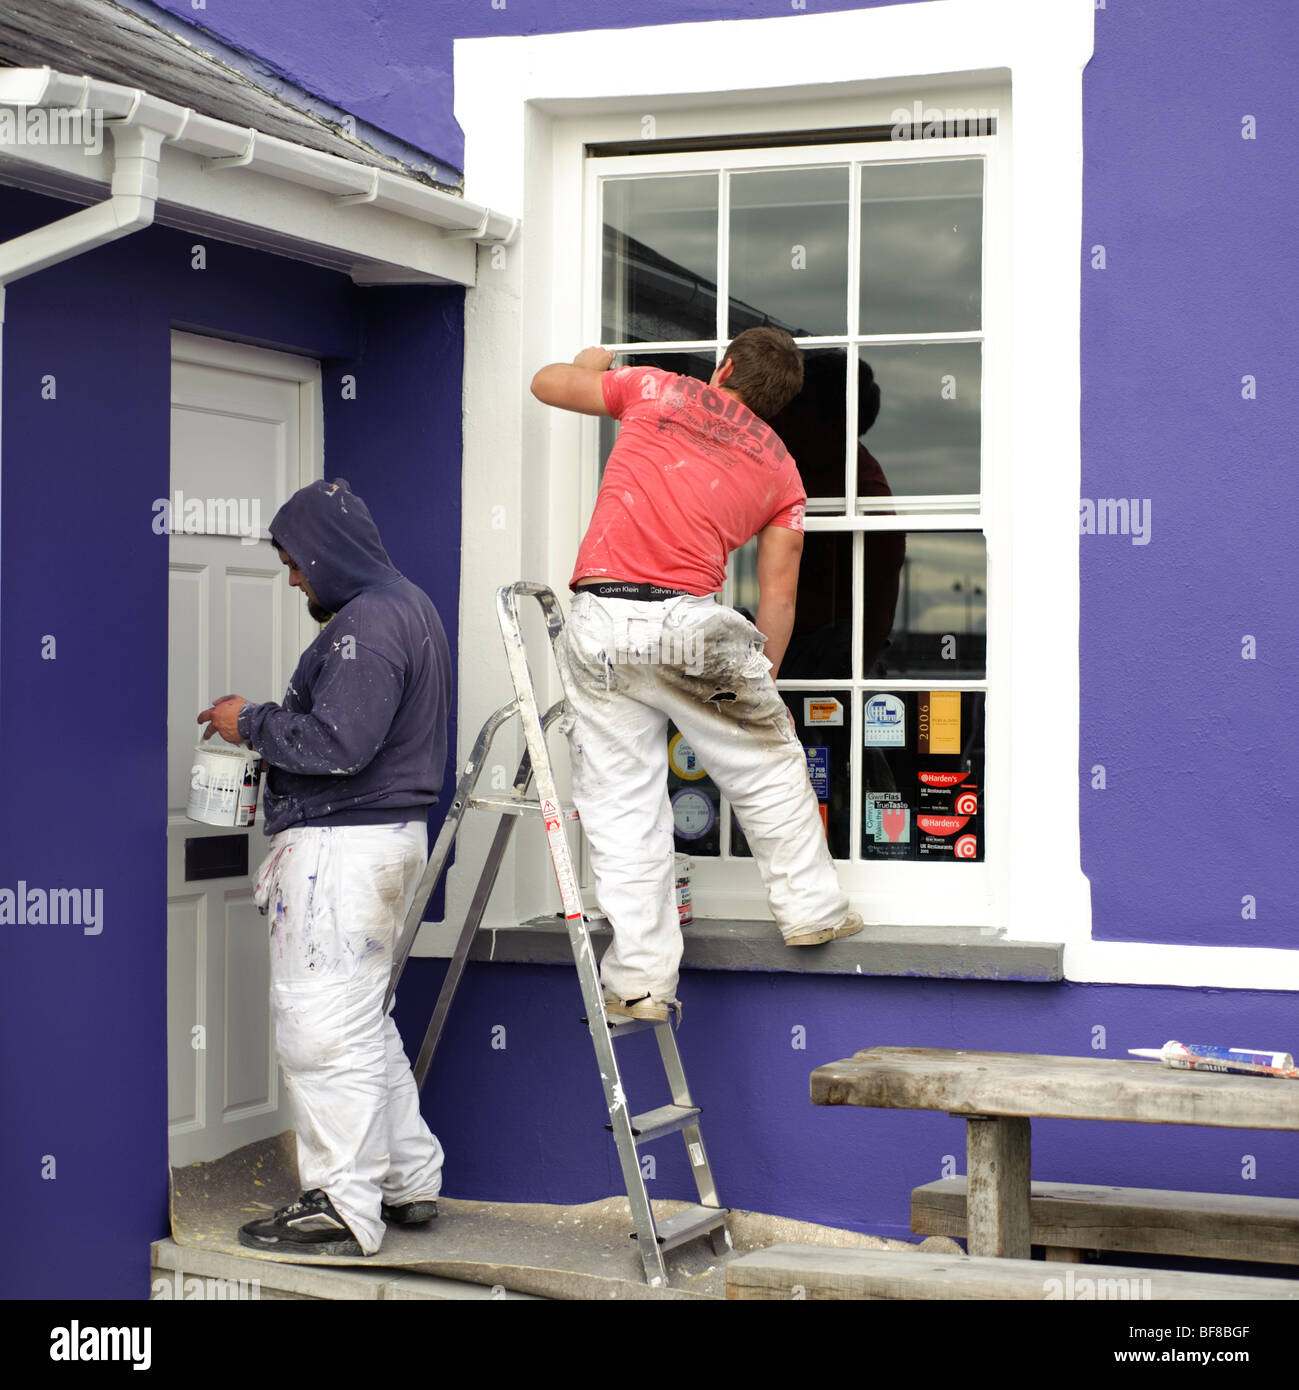 Two men gloss painting the woodwork on the exterior of a building -  door window - Stock Image